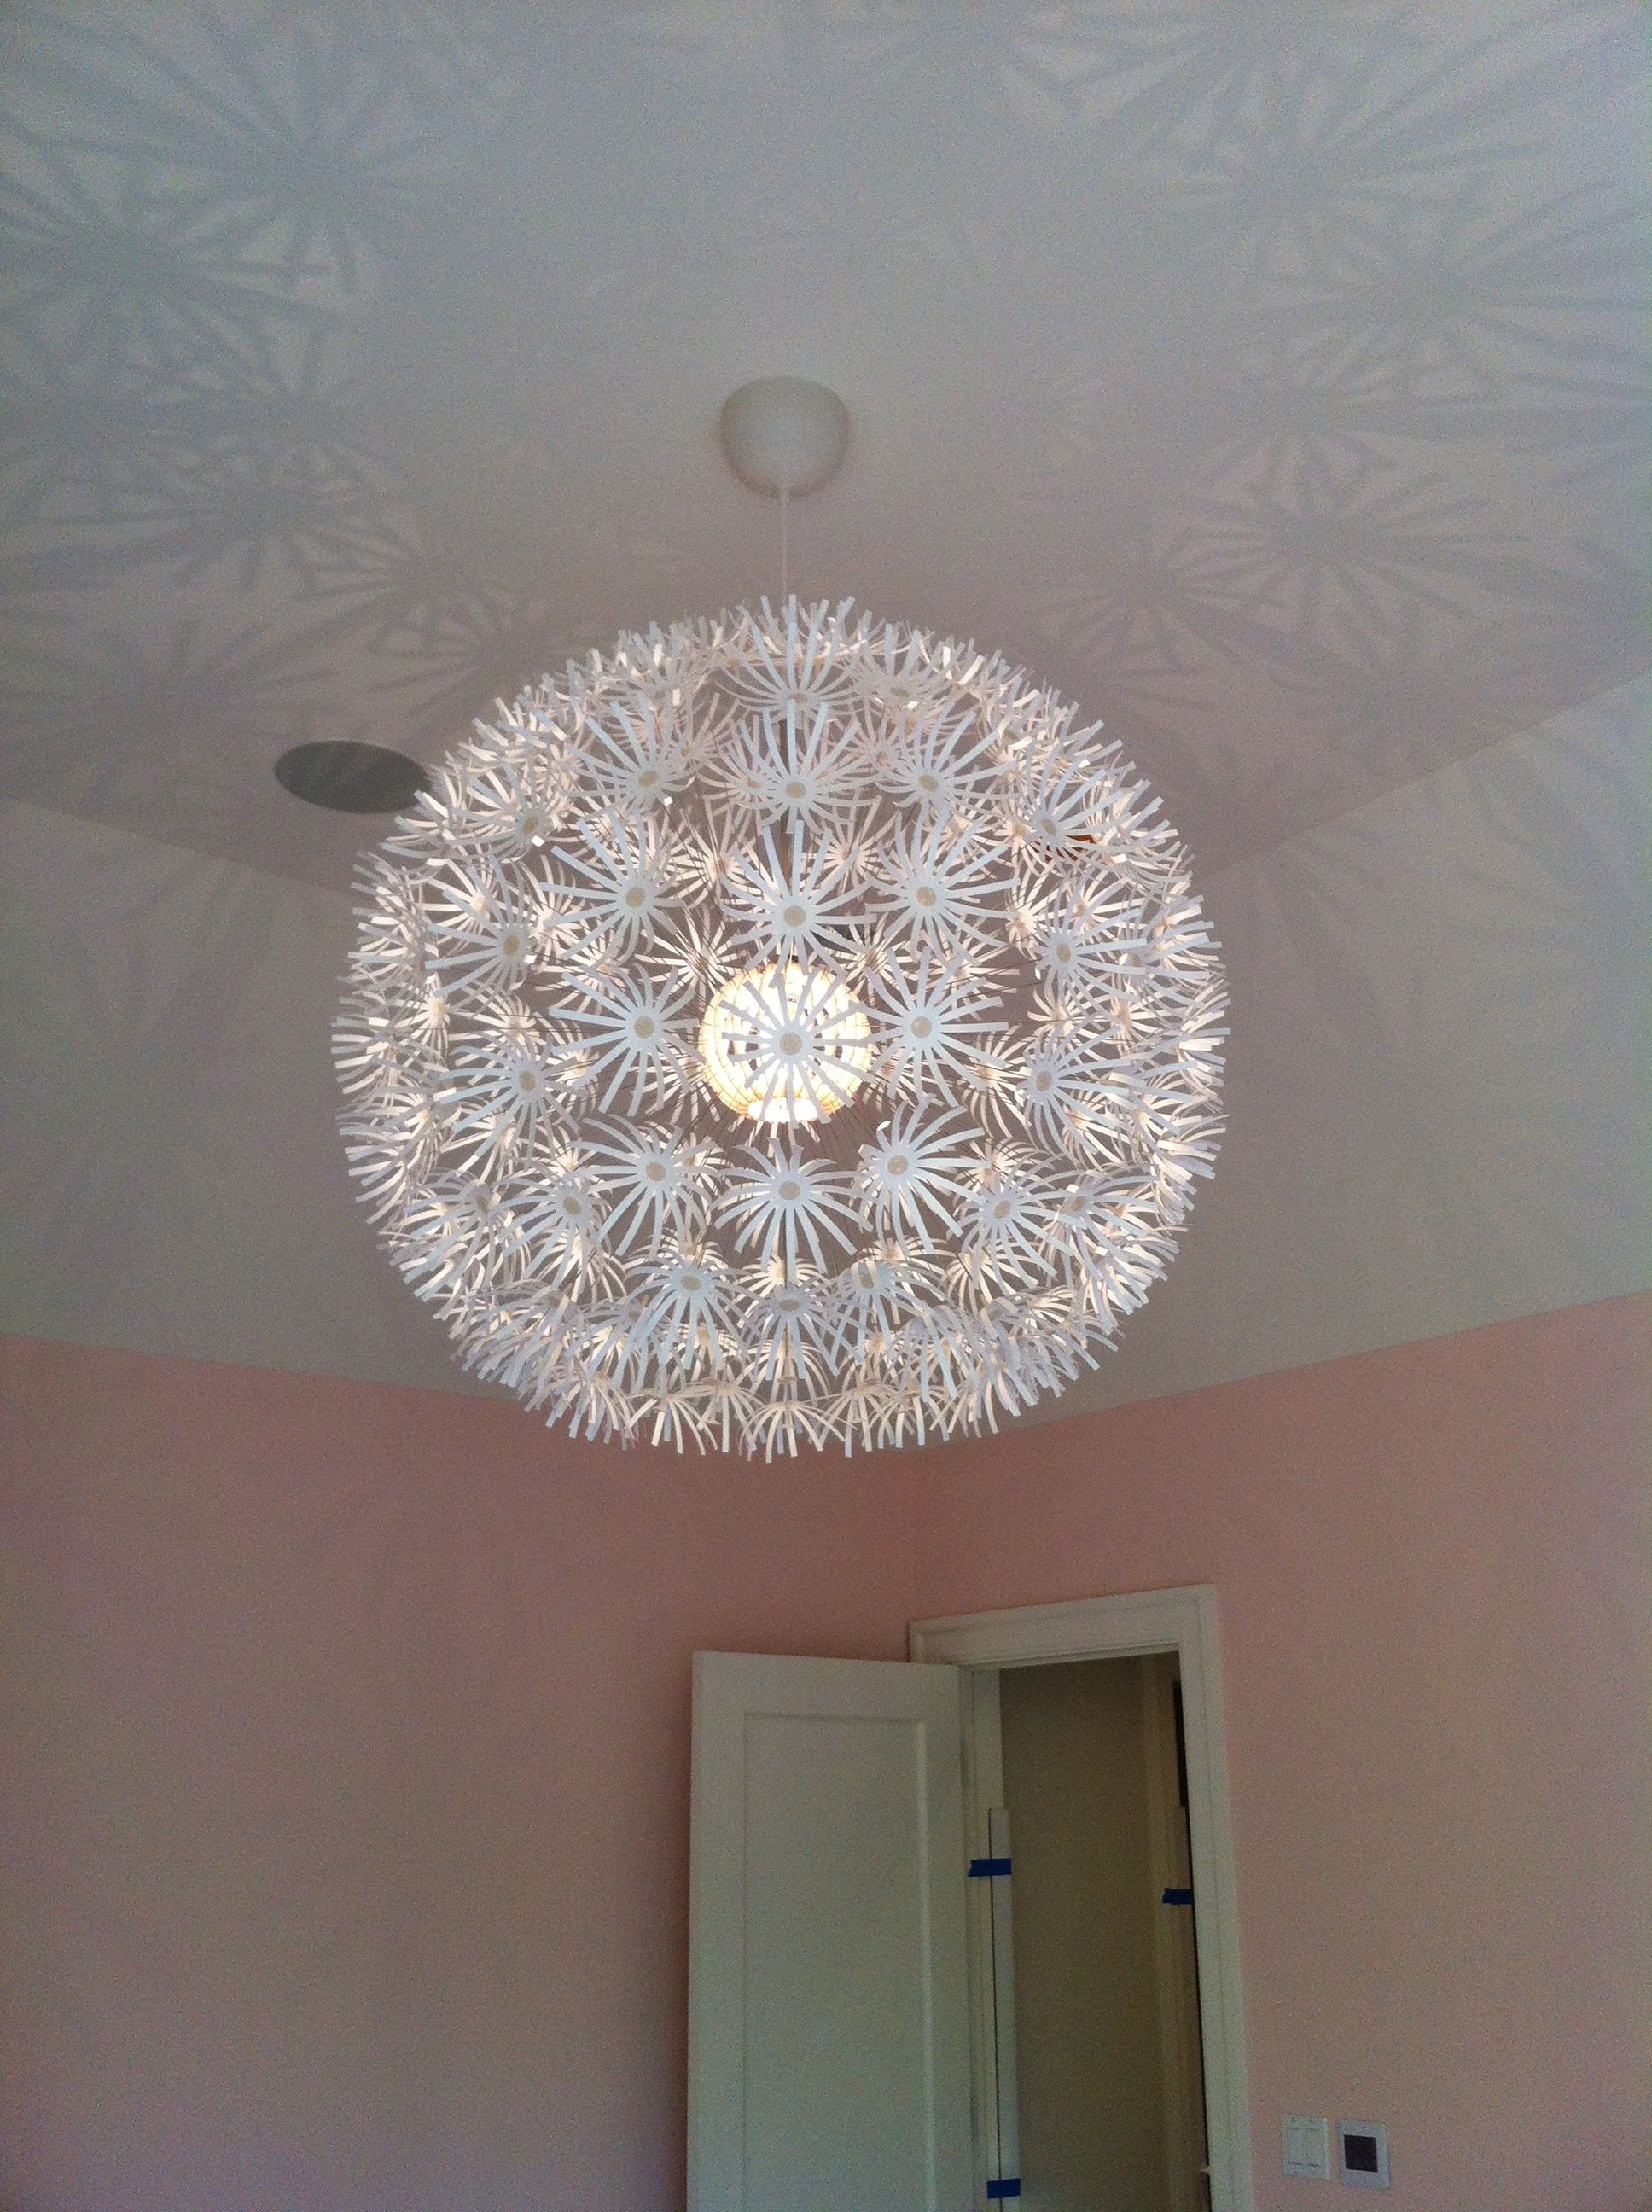 Love This Pendant Light From Ikea For A Little Girls Room It S White But Takes On The Color Of The Walls In The R Kid Room Decor Kids Room Little Girl